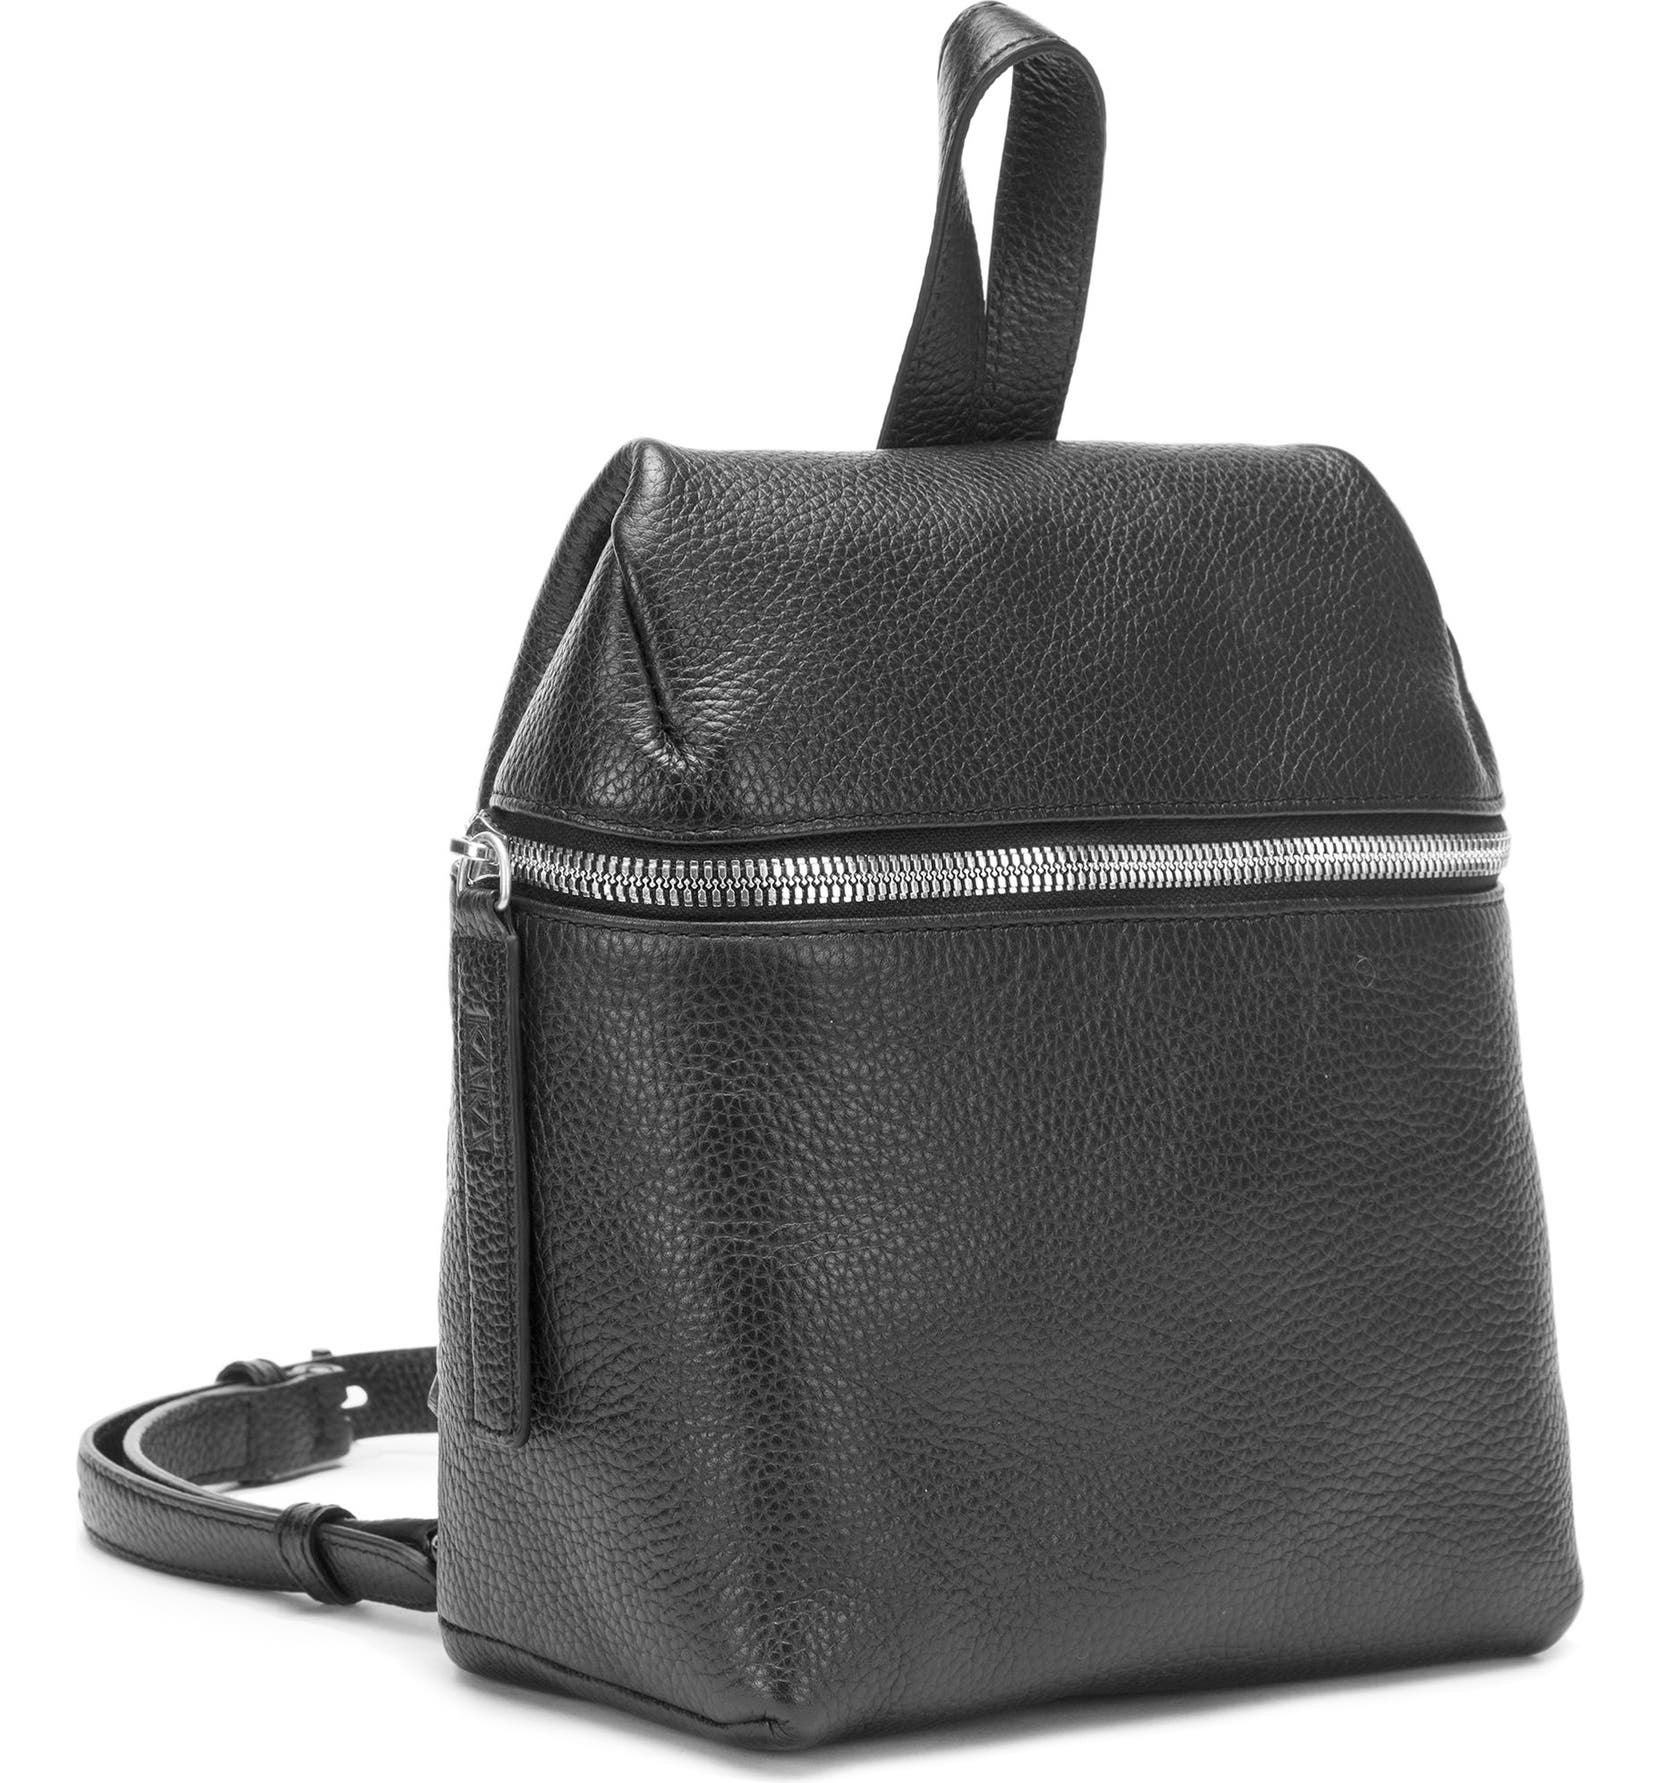 9692251f4c Can t decide between a classic black small backpack and something more...eccentric   Go for a two-for-one!